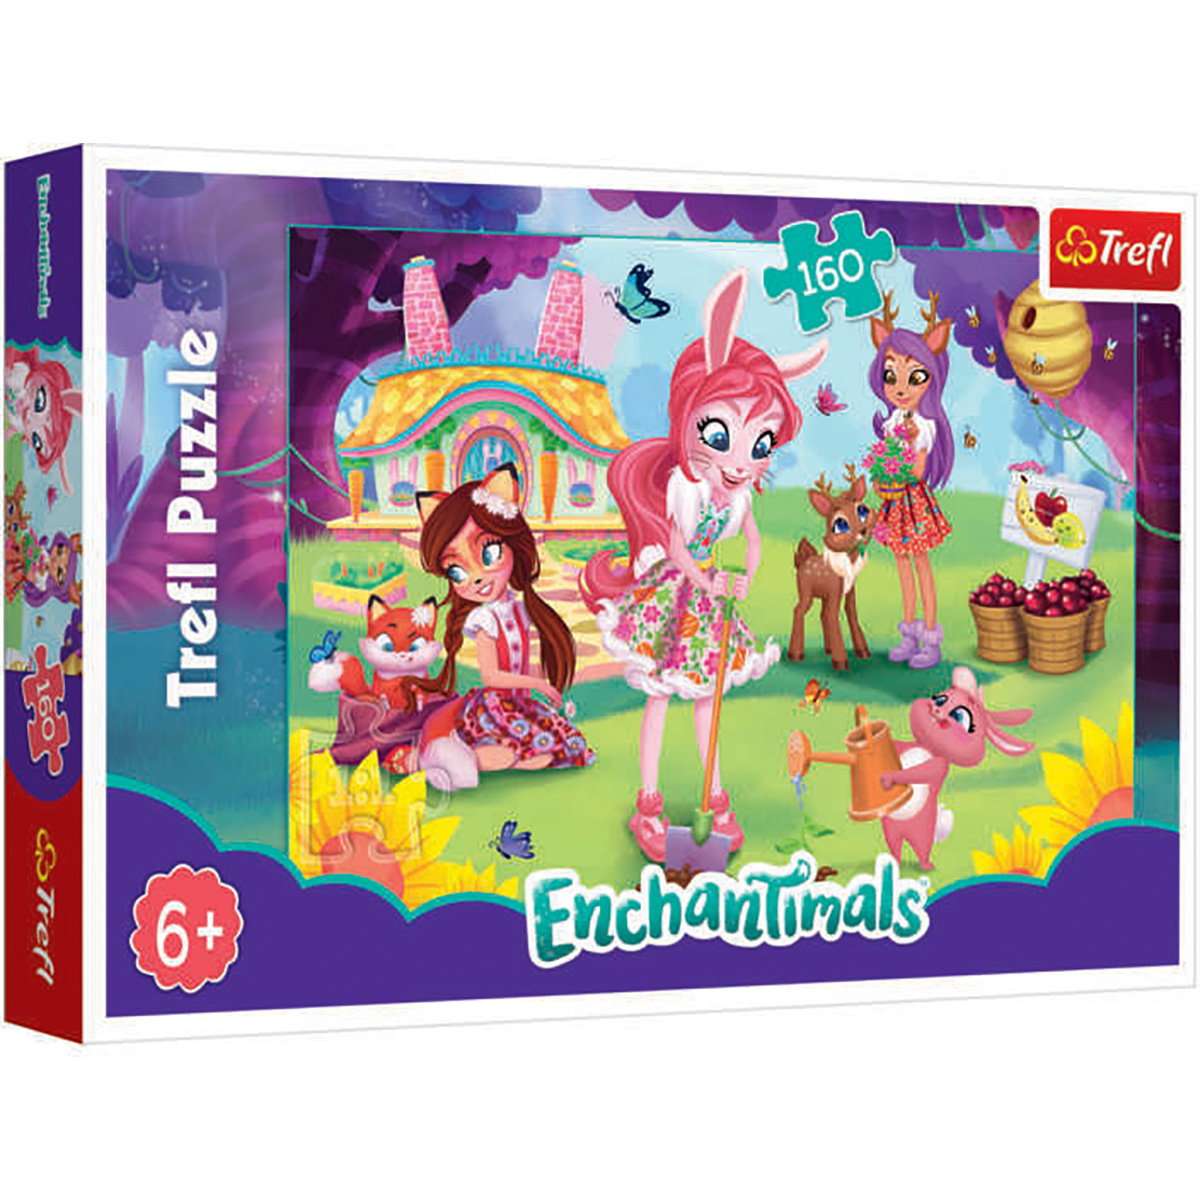 Puzzle Trefl, Enchantimals, Danessa si Felicy in gradina, 160 piese imagine 2021